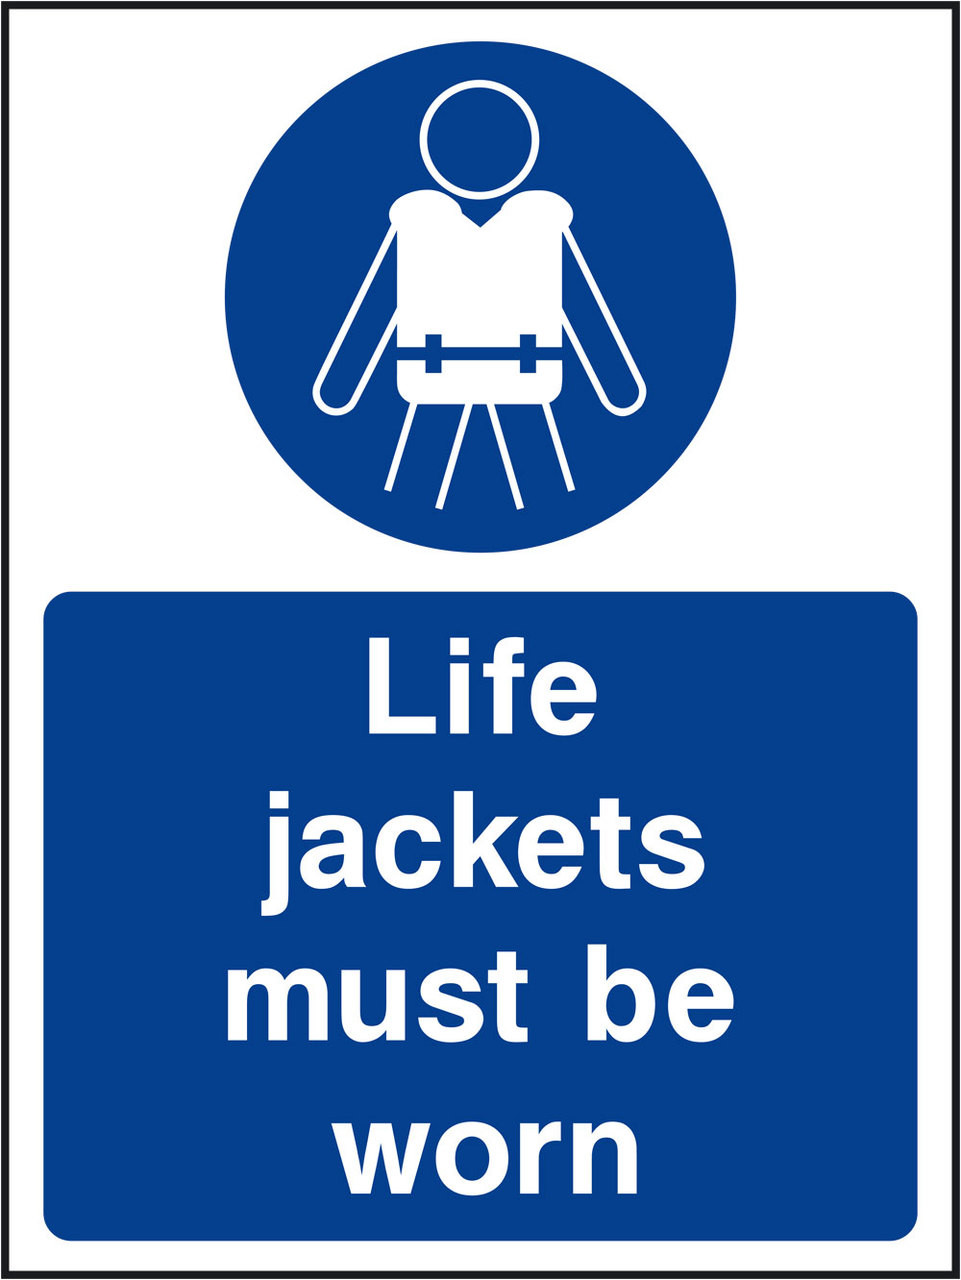 Life jackets must be worn